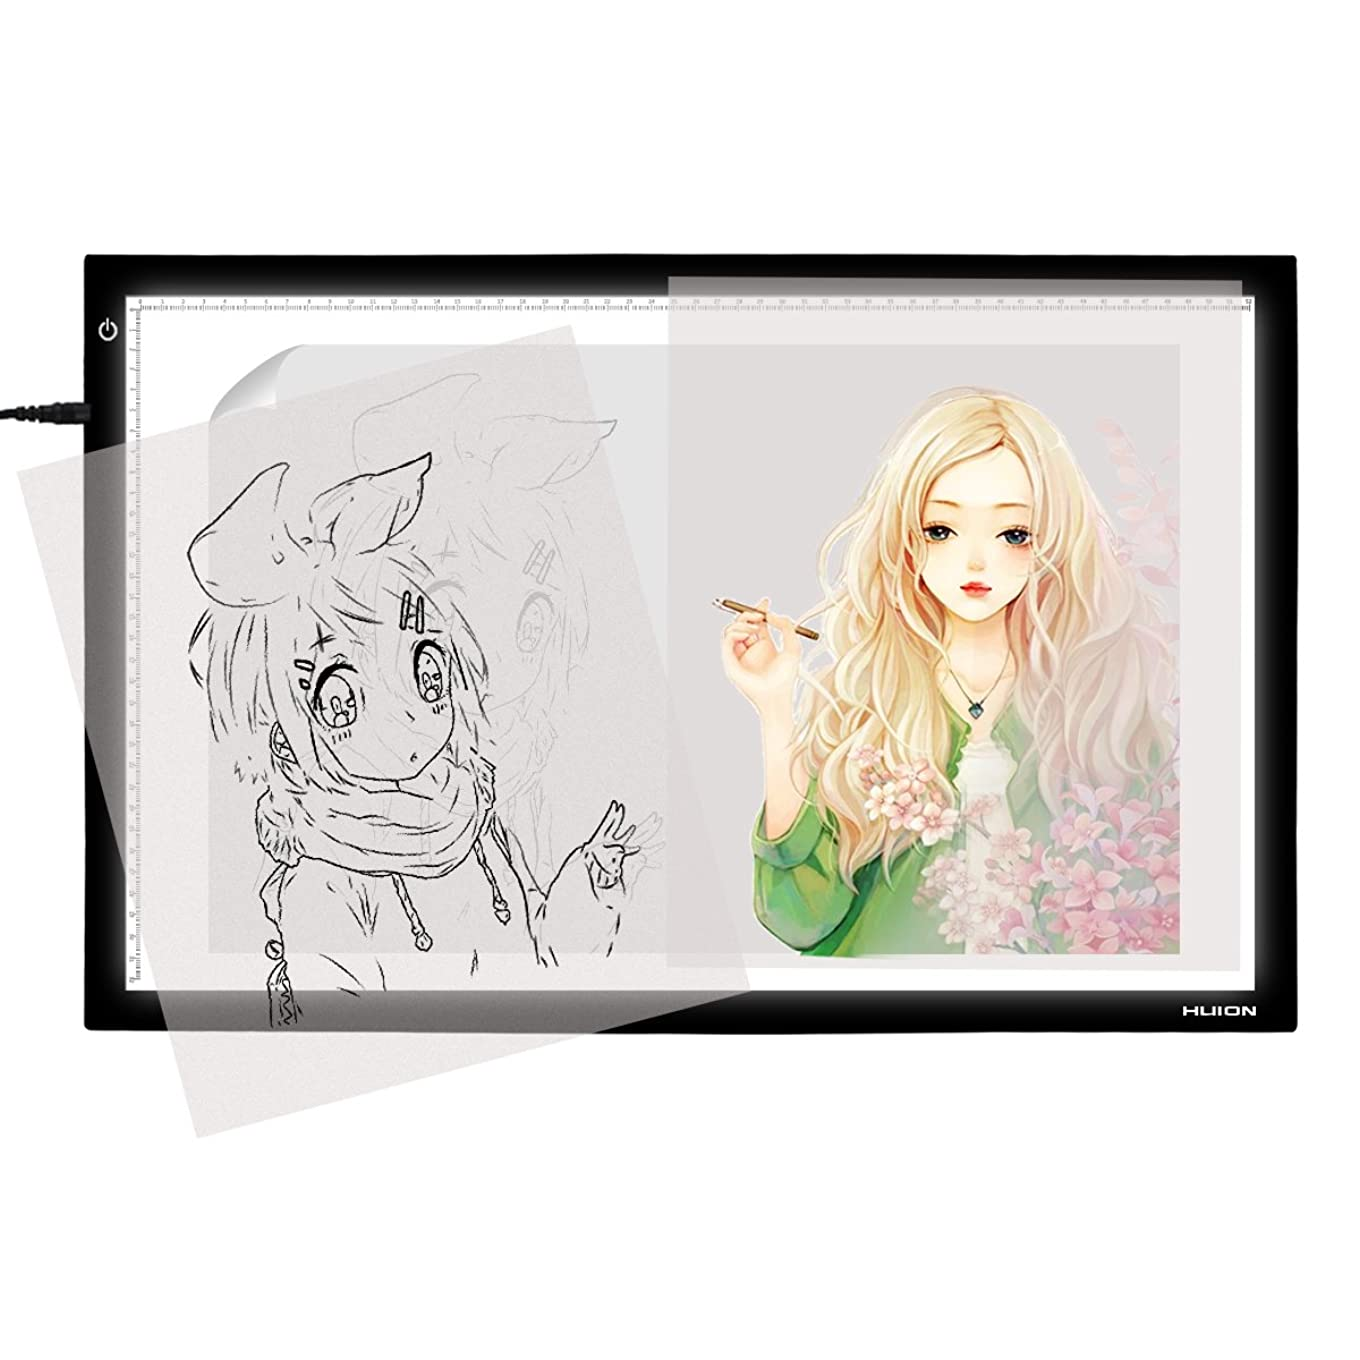 Huion A2 26.77 Inches Large Thin Light Box Drawing Light Board Tracing light pad with Adjustable Brightness for Artcraft, Animation, Sketching, Tattoo Transferring wmvldwtzxnqv